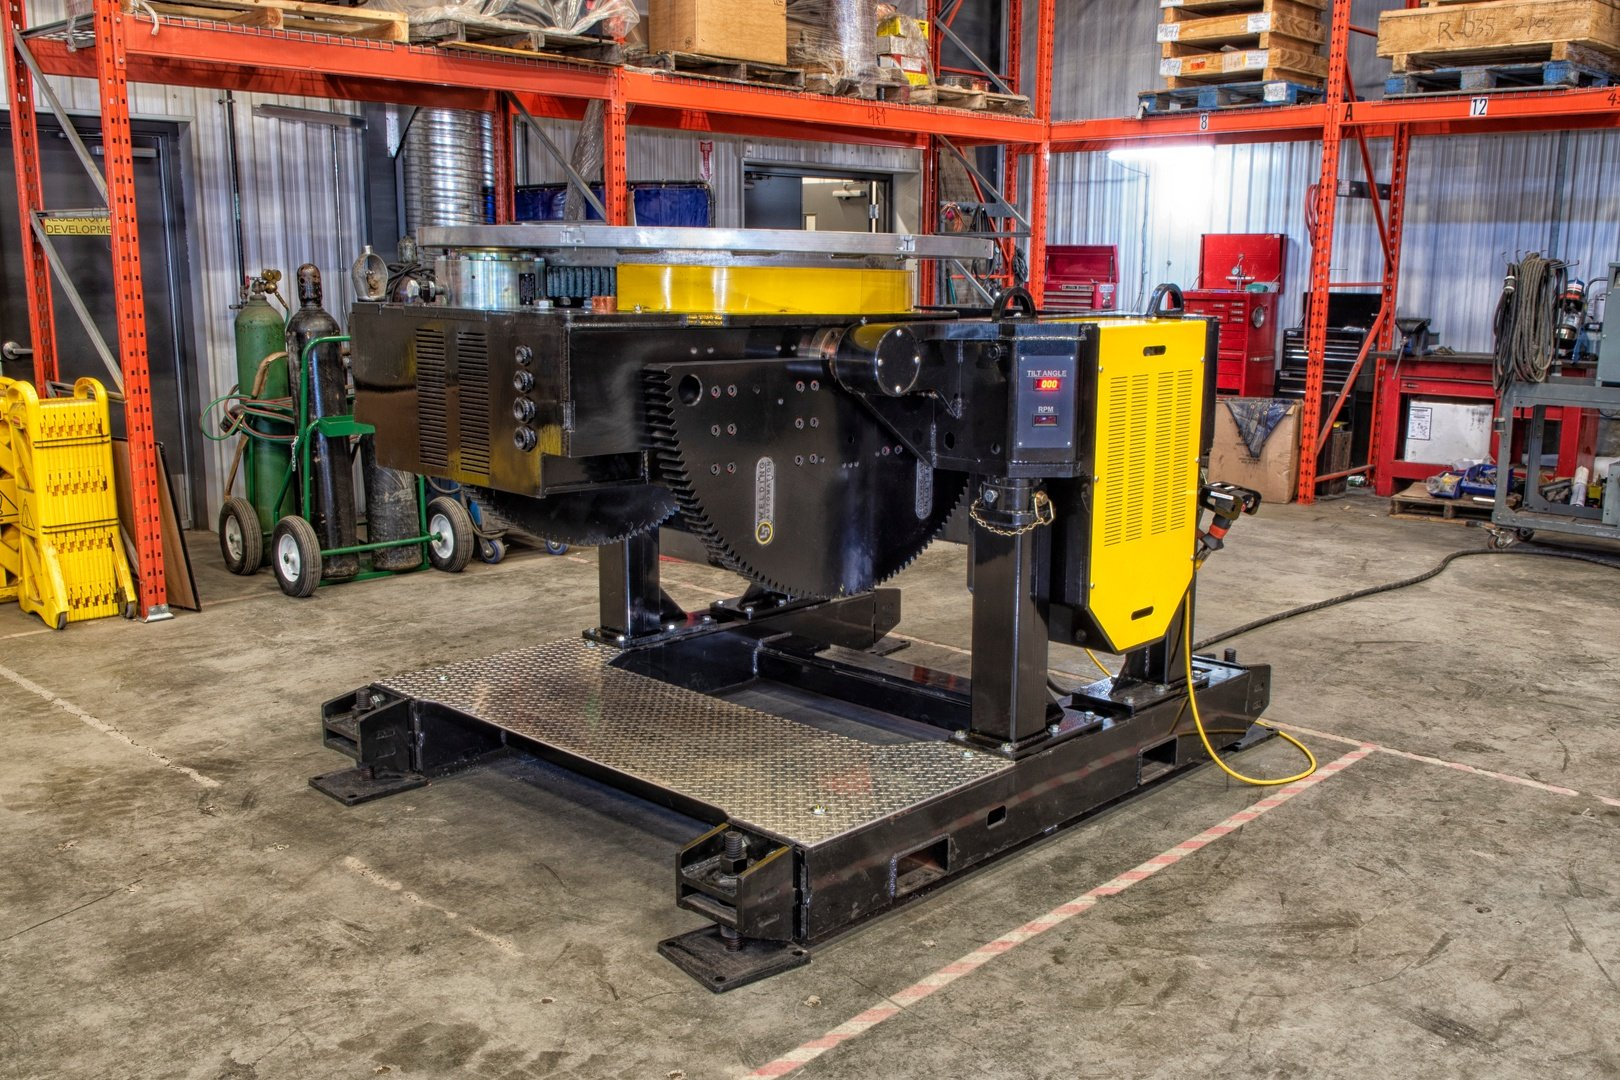 flat facing gear tilt welding positioner with 24,000 lbs load capacity